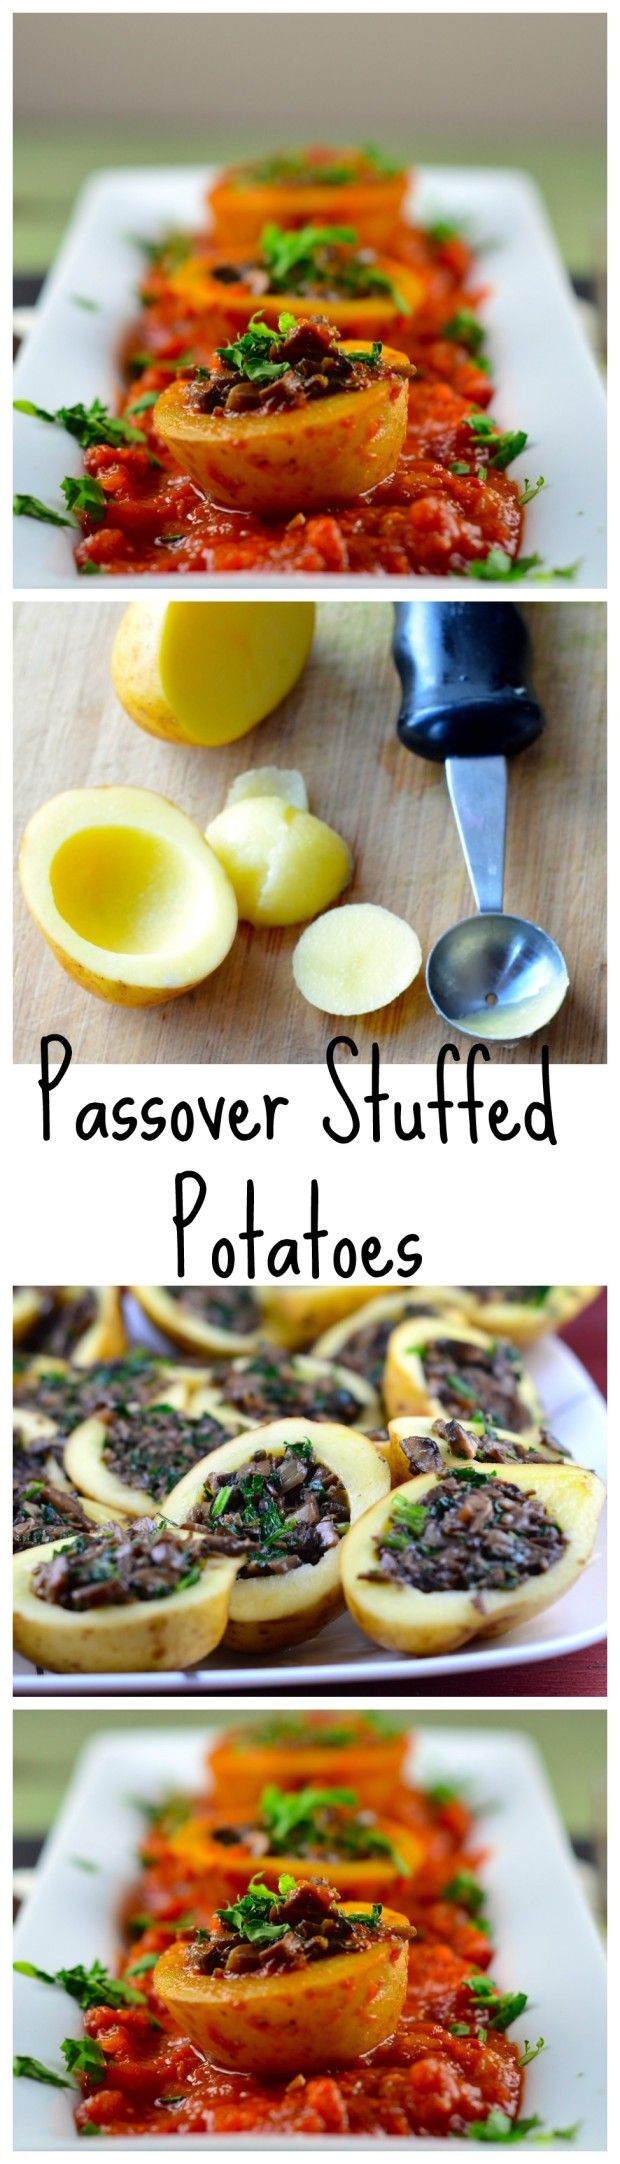 Mushroom Stuffed Potatoes #vegan #vegetarian #glutenFree #passover #kosher…